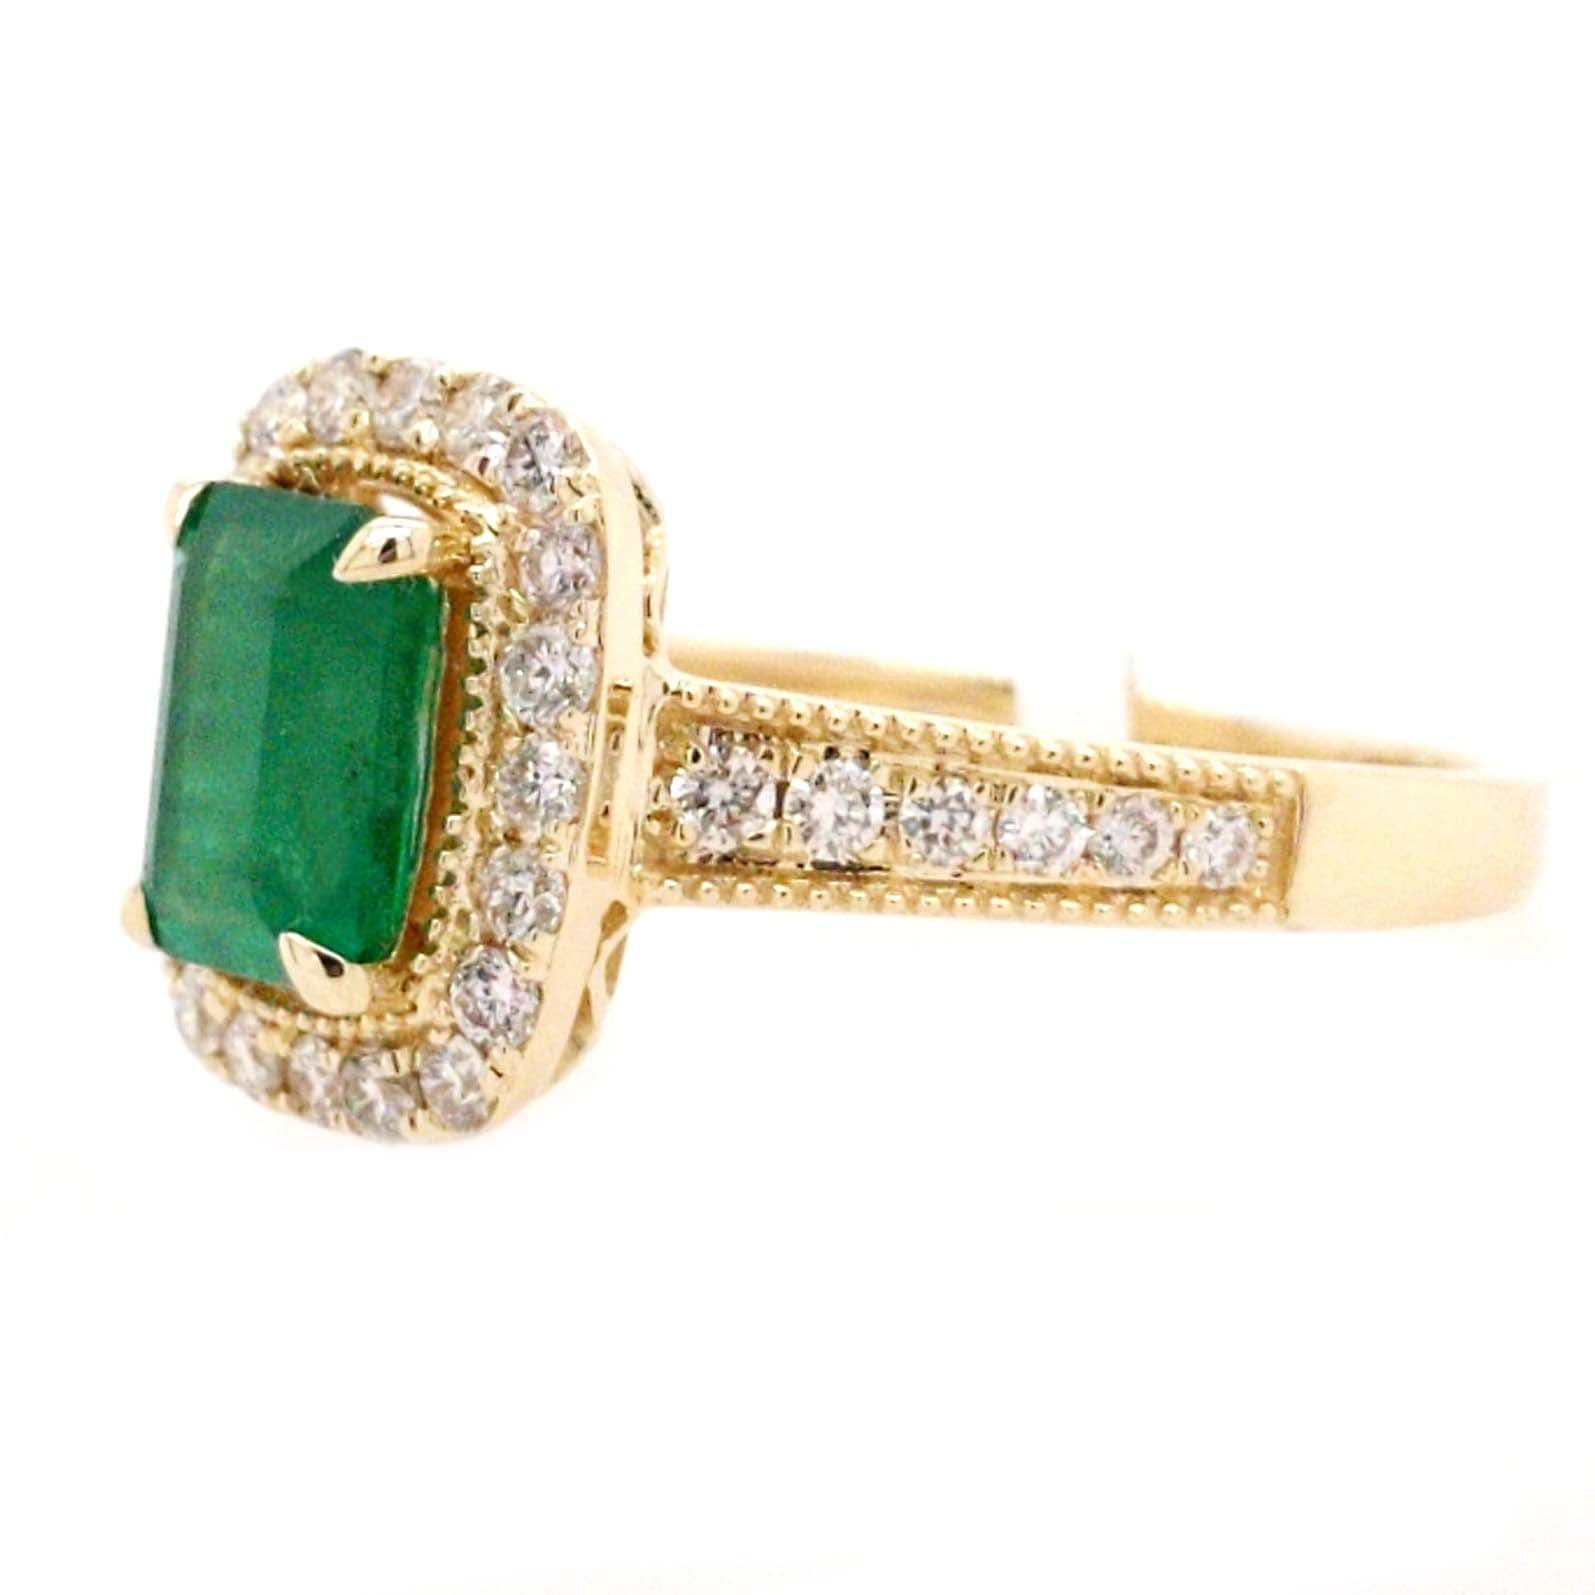 Kendra - 1.12 CT Emerald Cut Emerald with Diamond Accents in 14k